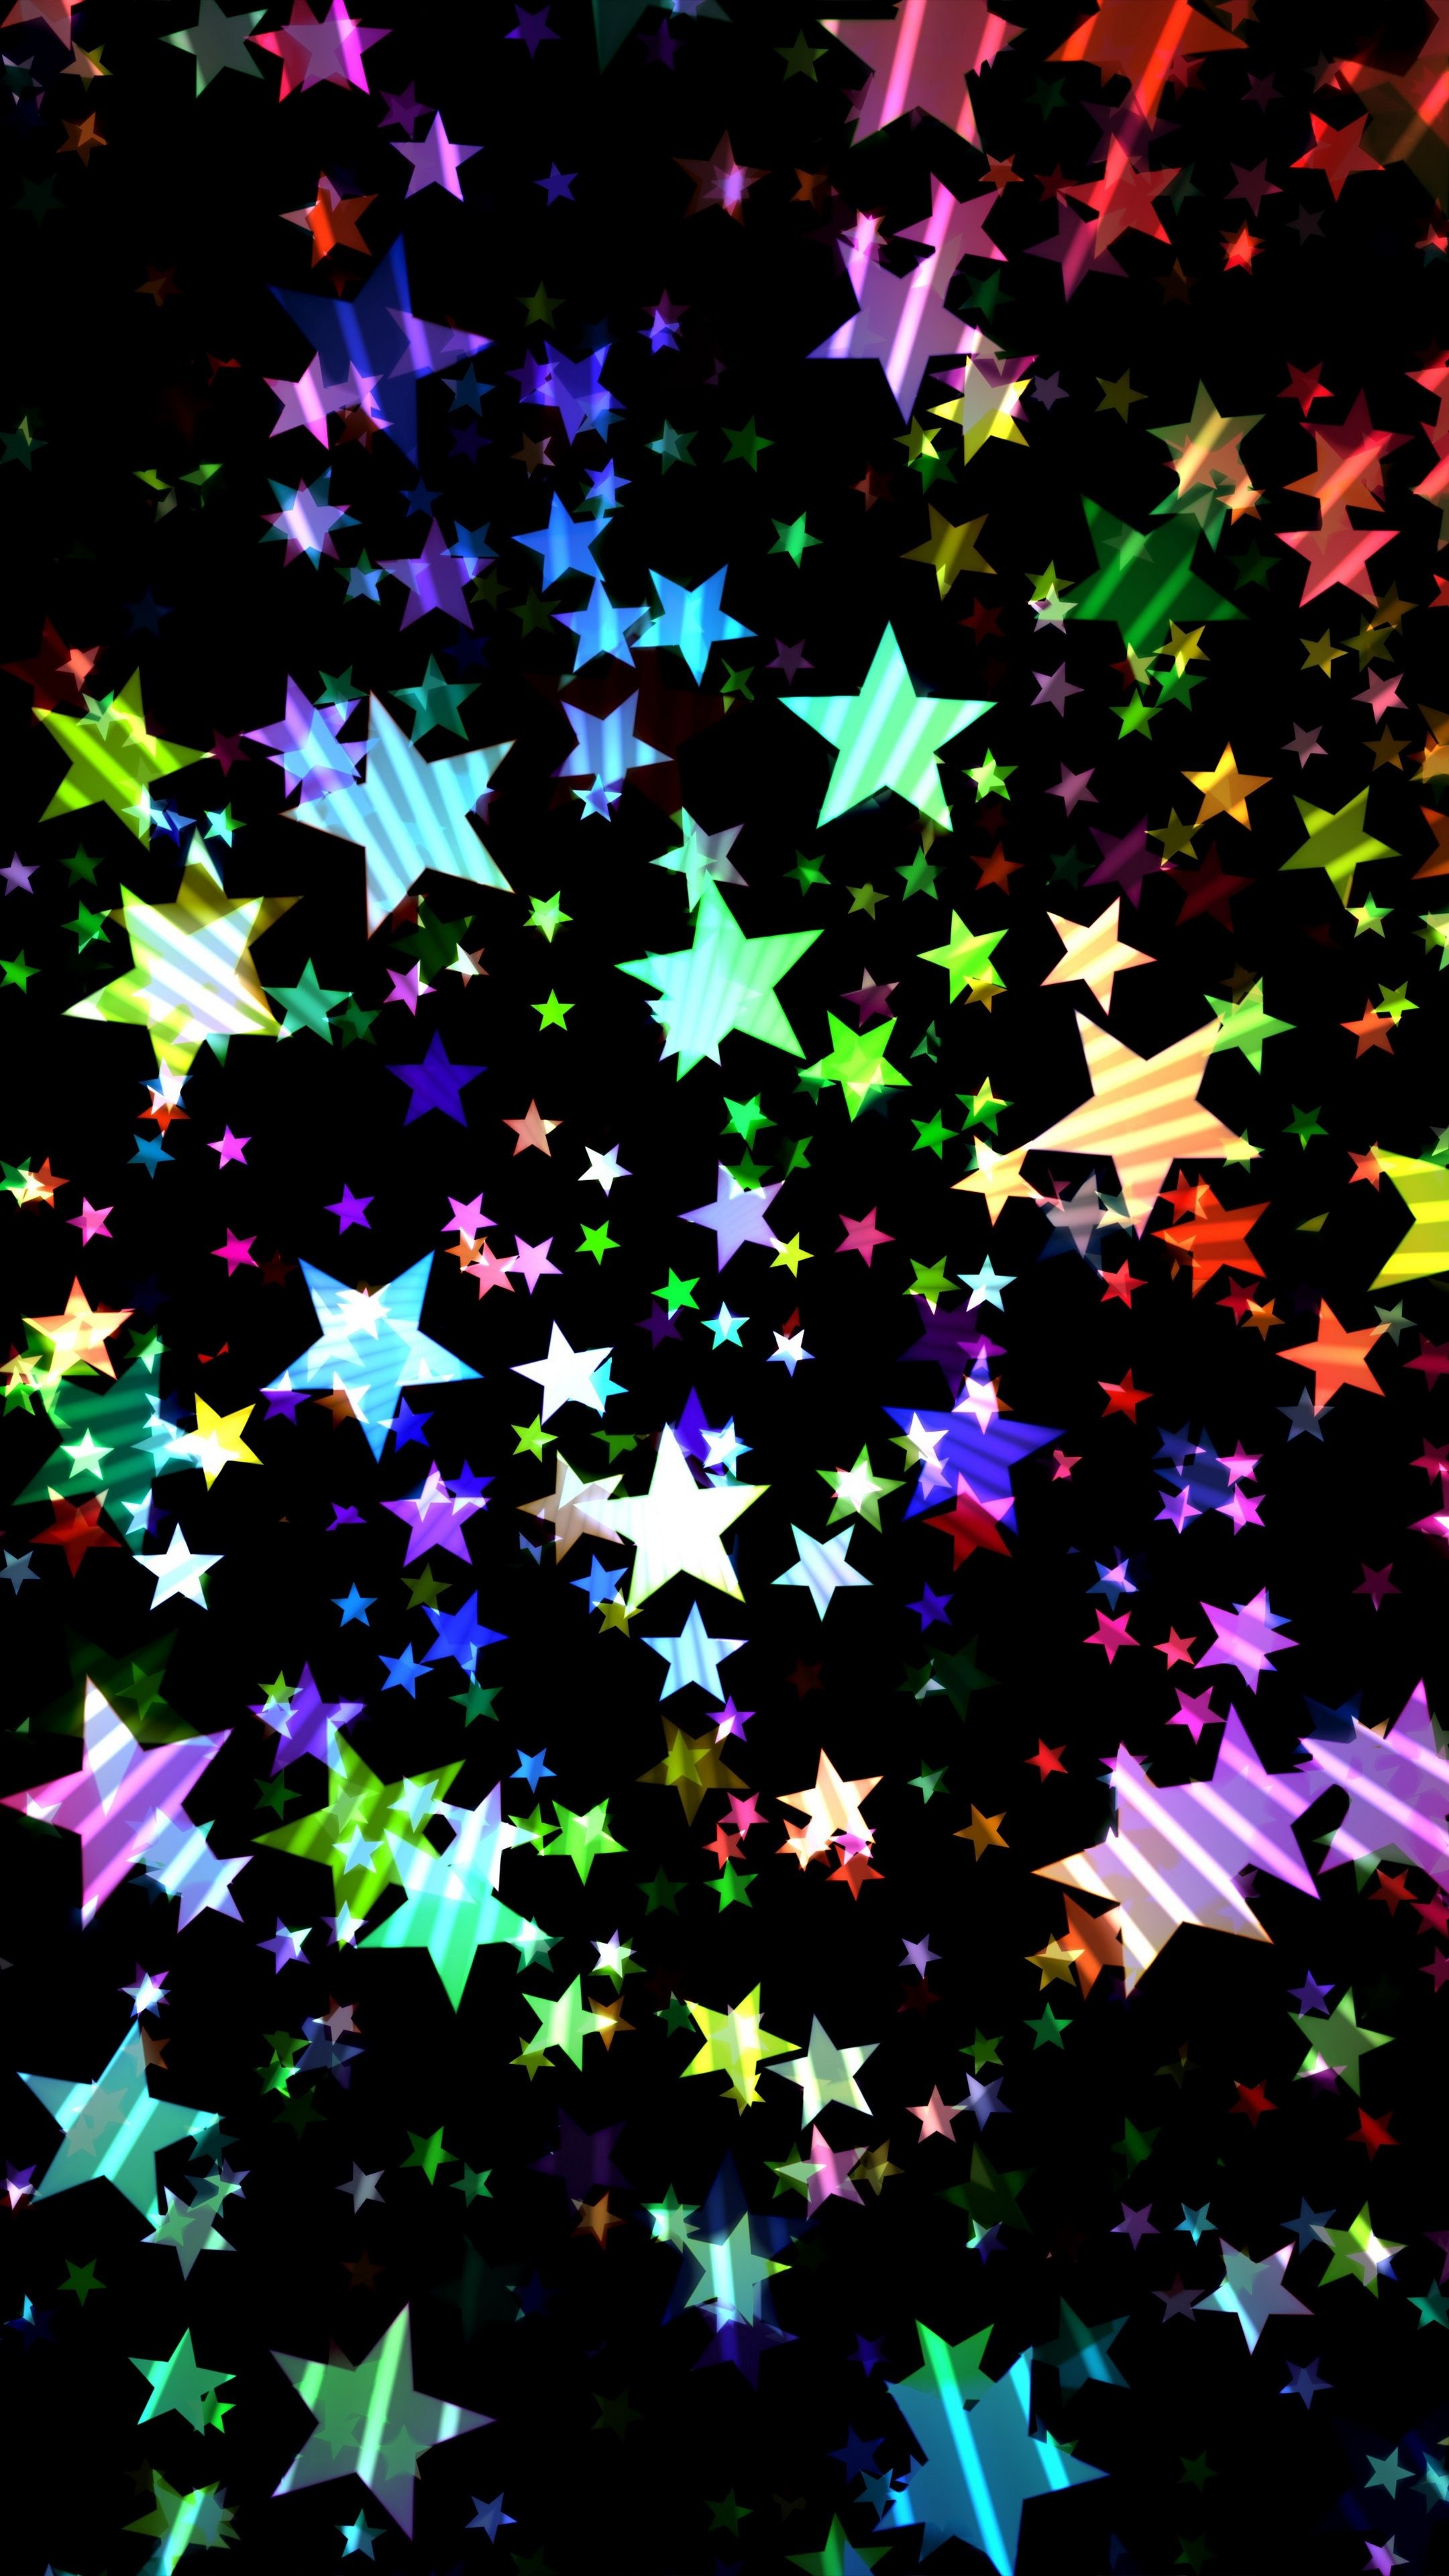 Res: 2160x3840, #Abstract #stars #colorful #shiny #bright #wallpapers hd 4k background for  android :)